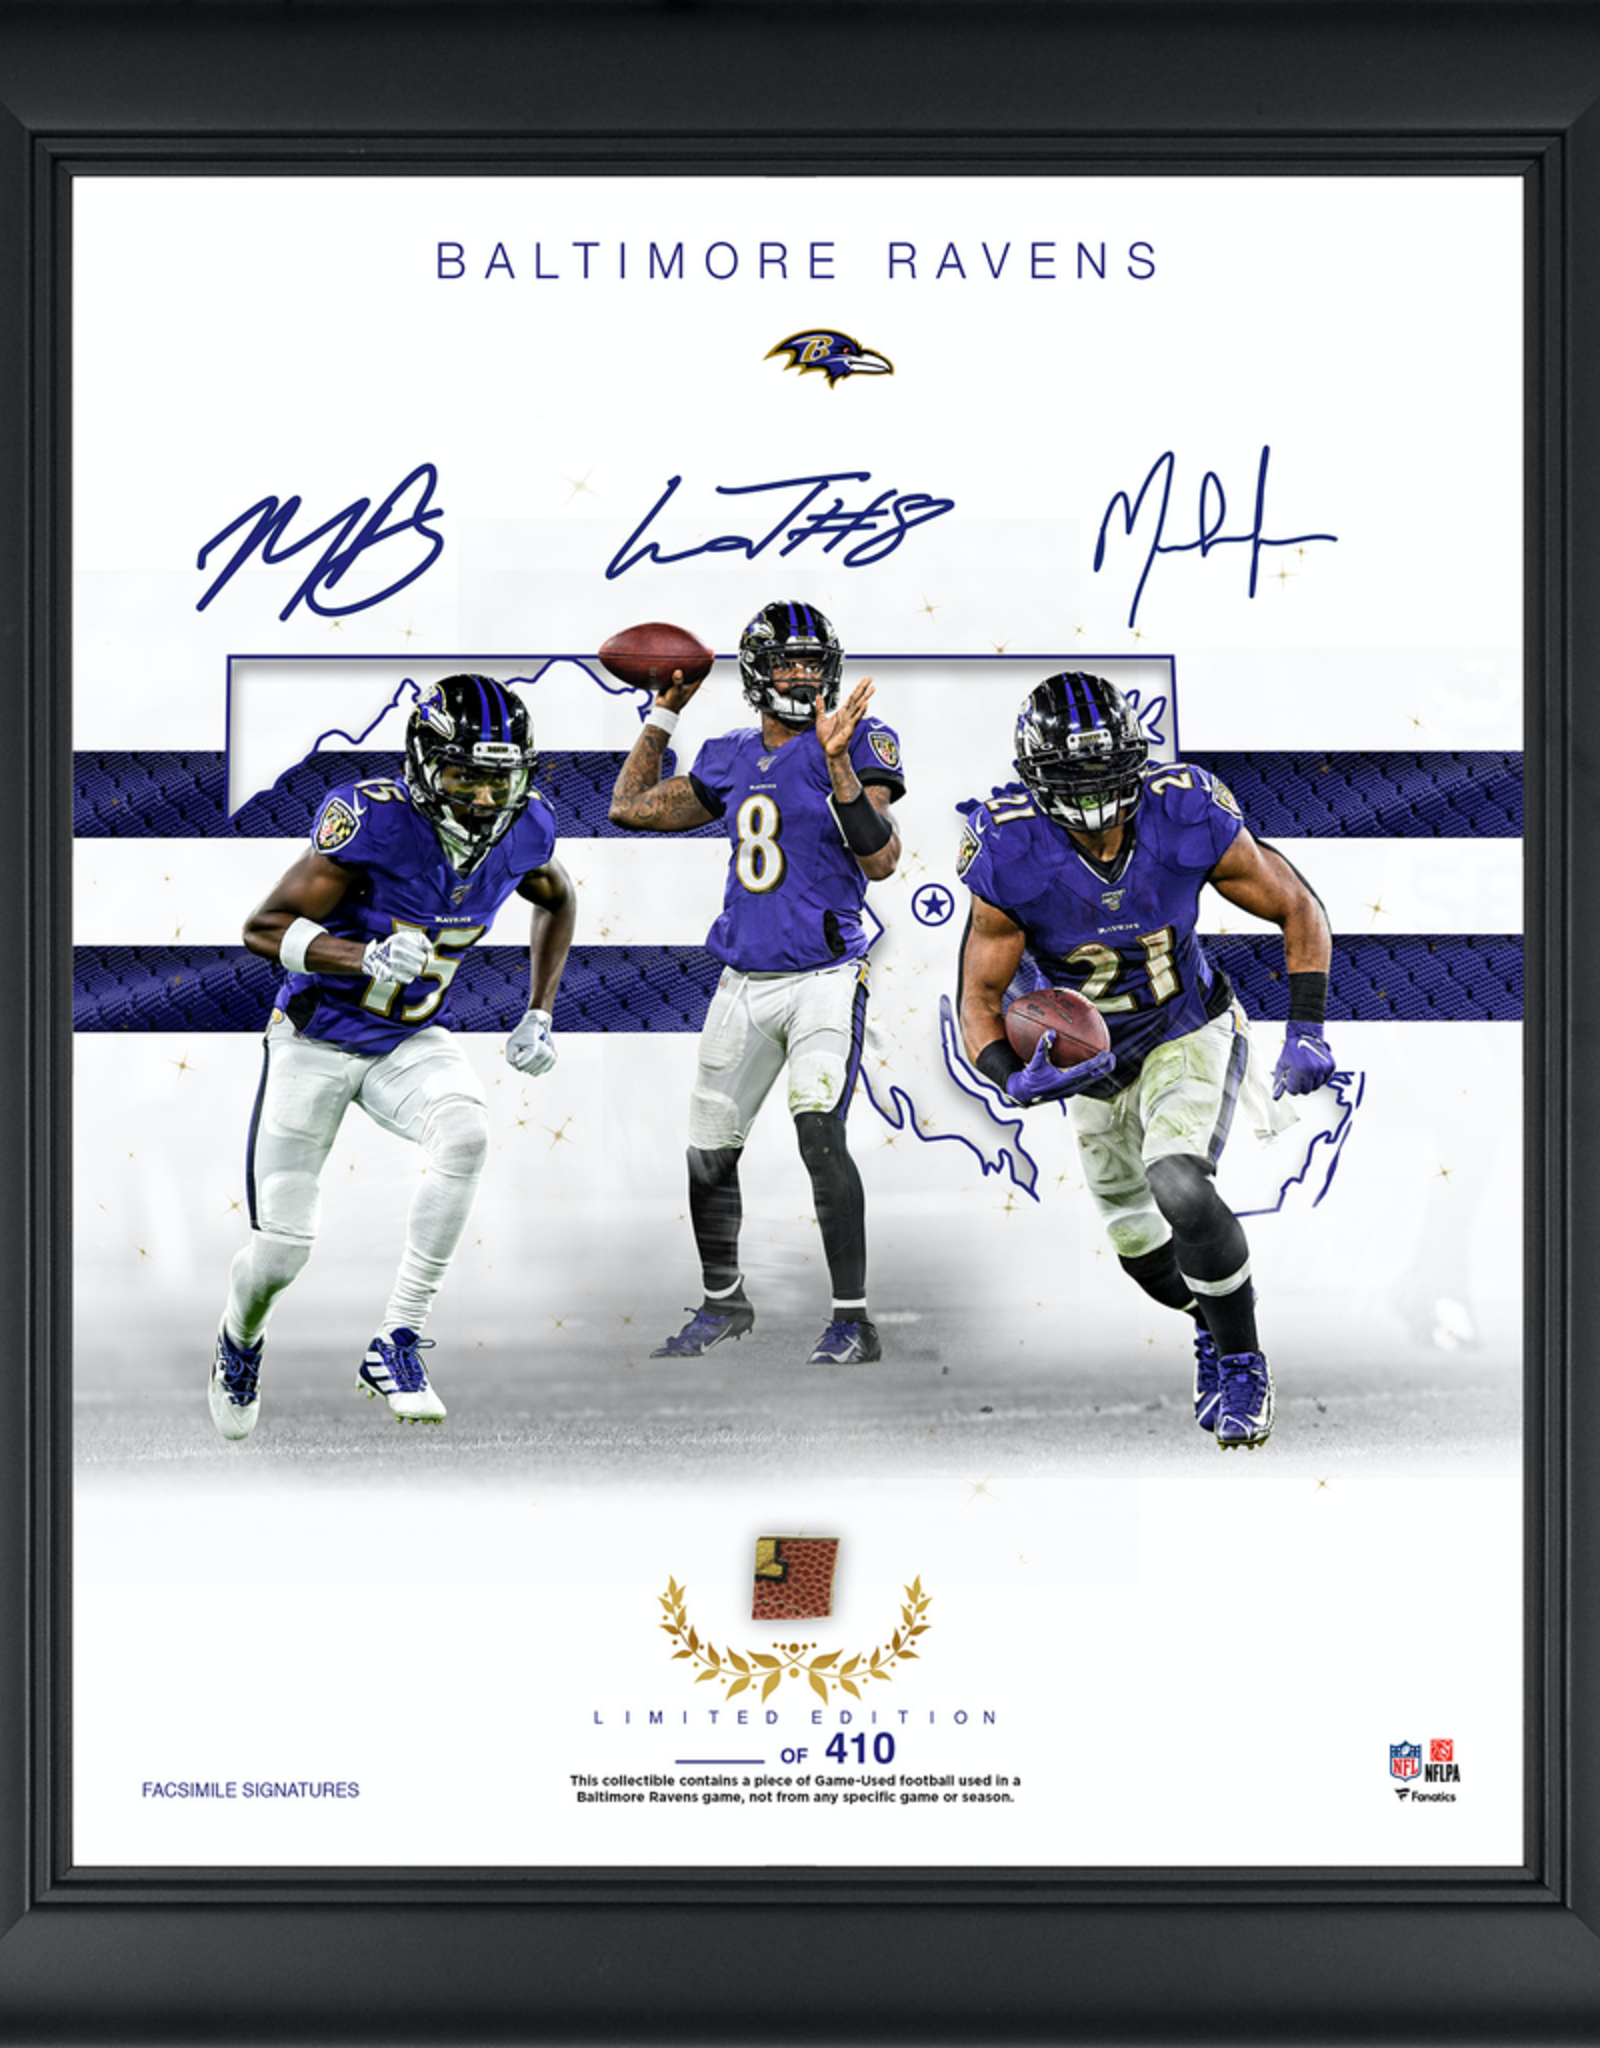 "MOUNTED MEMORIES Baltimore Ravens LIMITED EDITION Framed 15"" x 17"" Franchise Foundations Collage with a Piece of Game Used Football"